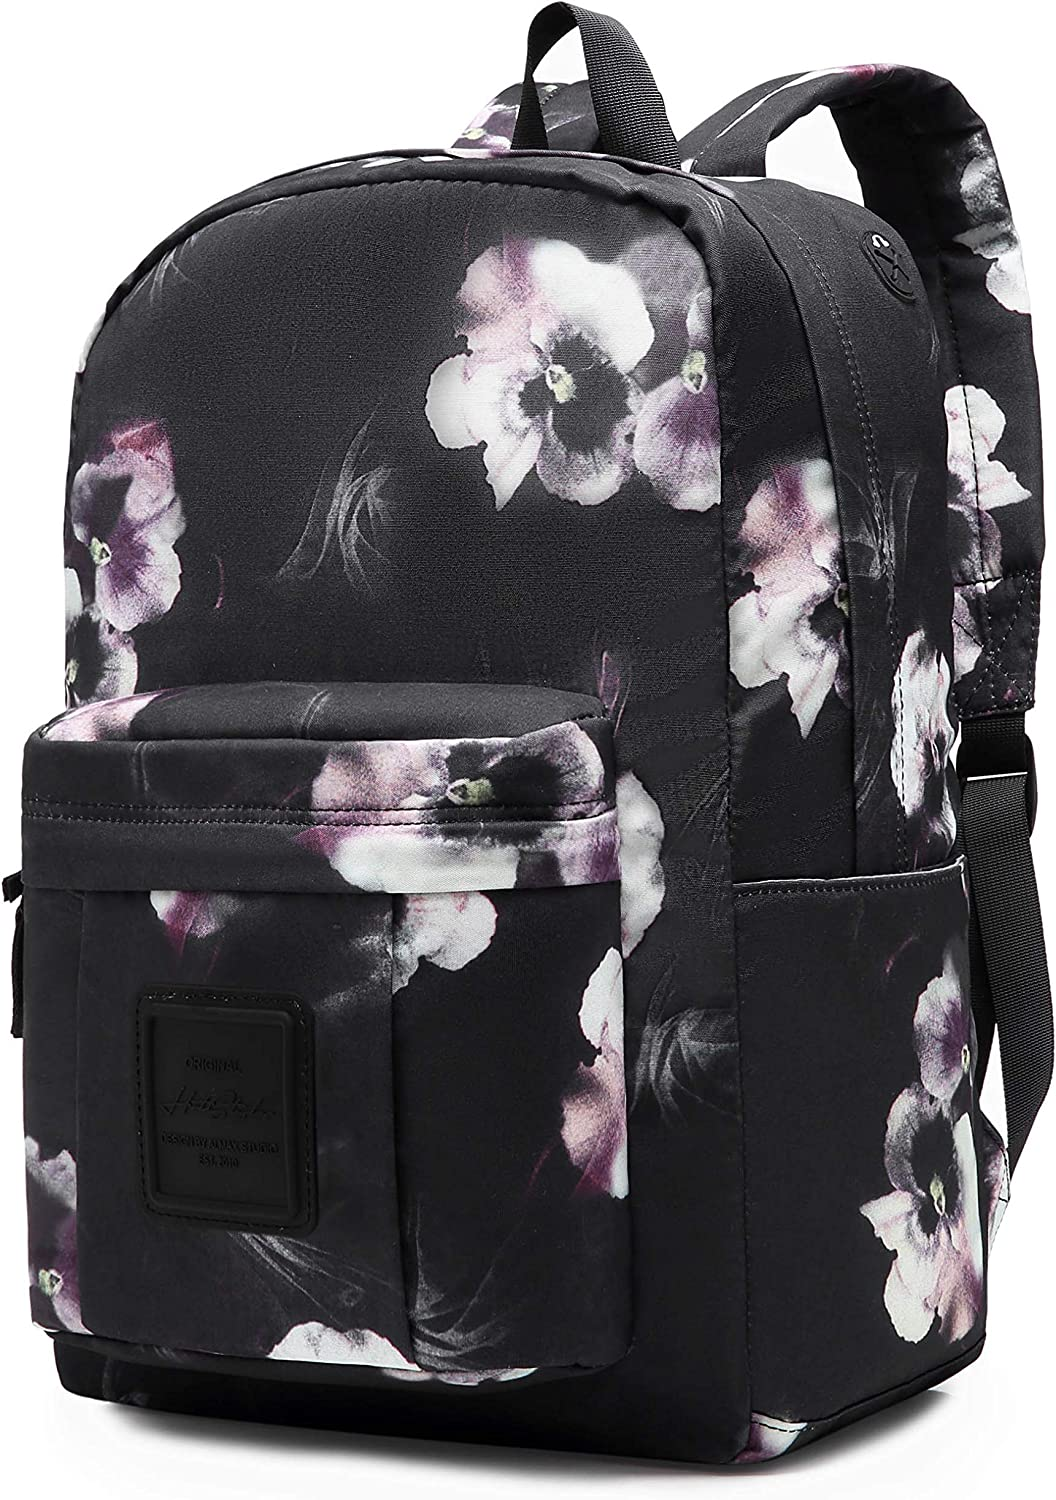 599s Floral School Backpack For Teen Girls, Water resistance & Durable Bookbag Cute for College, Misty Black